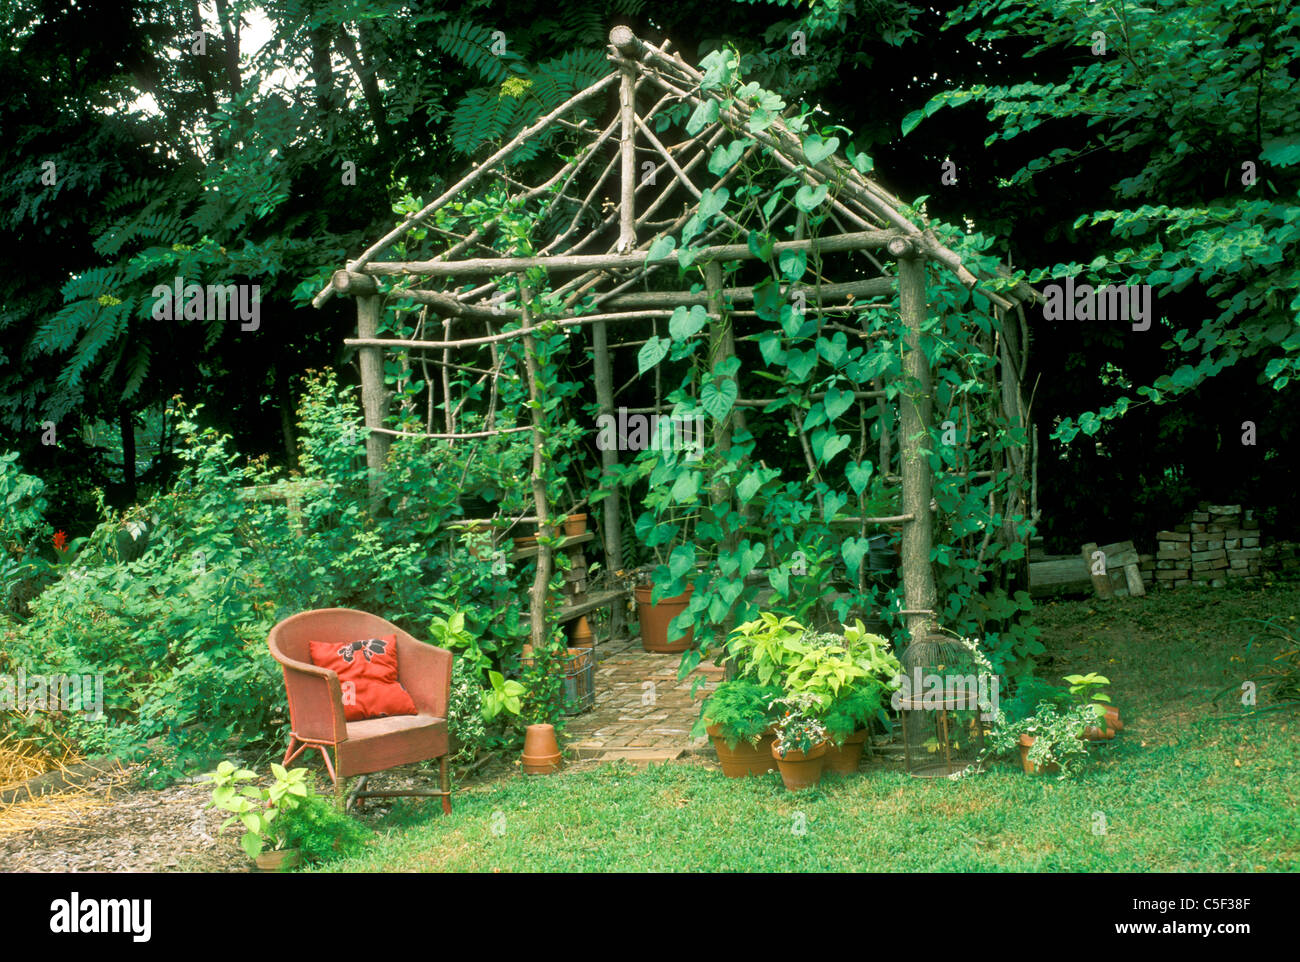 A Unique Garden Work Room And Shed Made Of Cut Locust Branches Covered With  Growing Vines   Rustic And Pleasing, Midwest USA